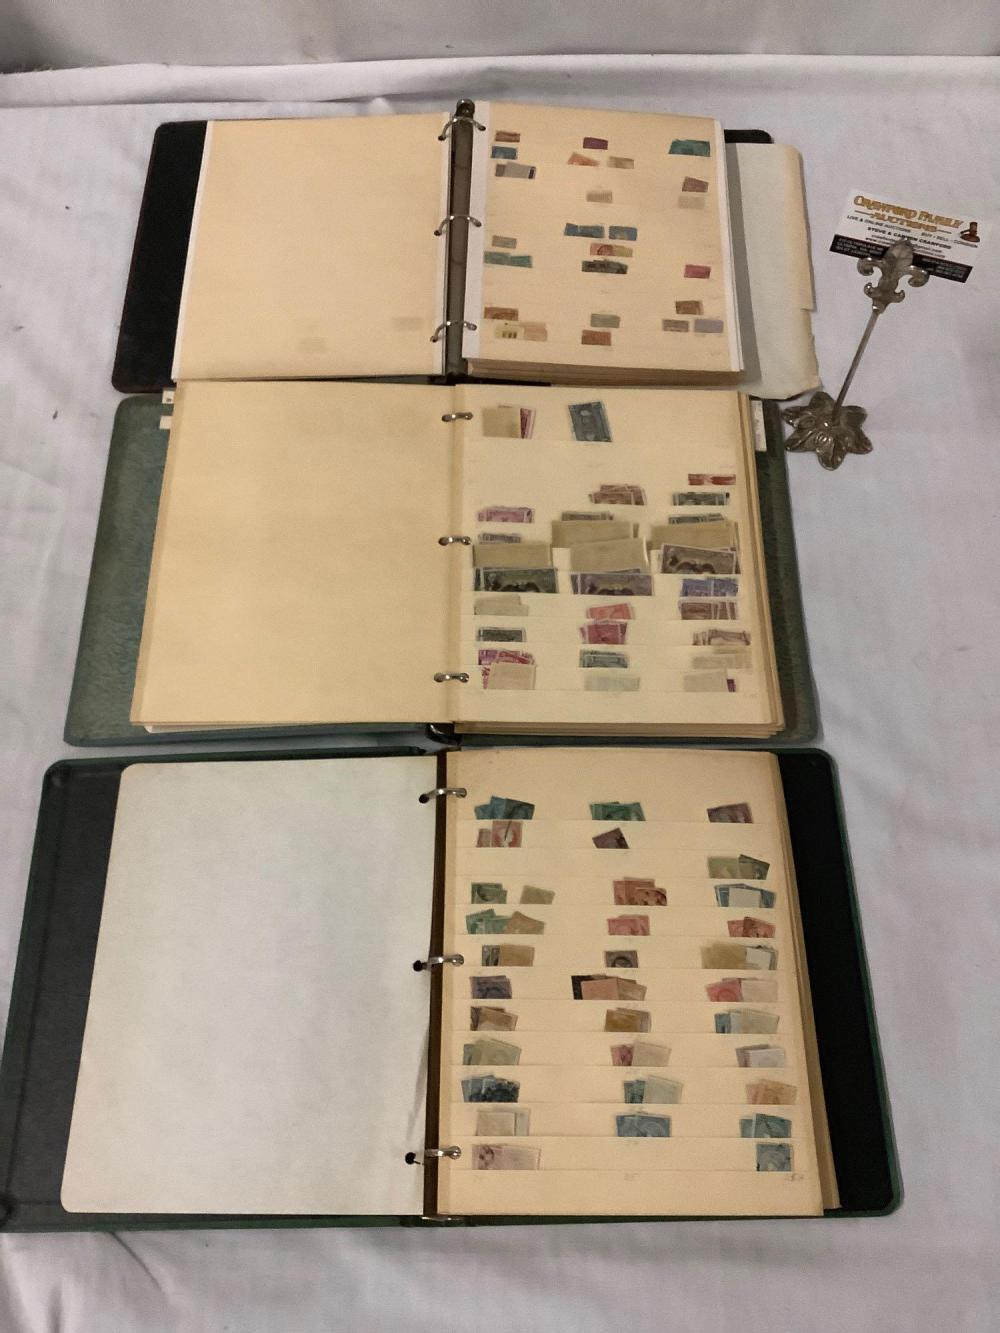 Lot 357: 3 binders full of antique stamps from Cuba, Ecuador and Columbia, dating back to 1930s